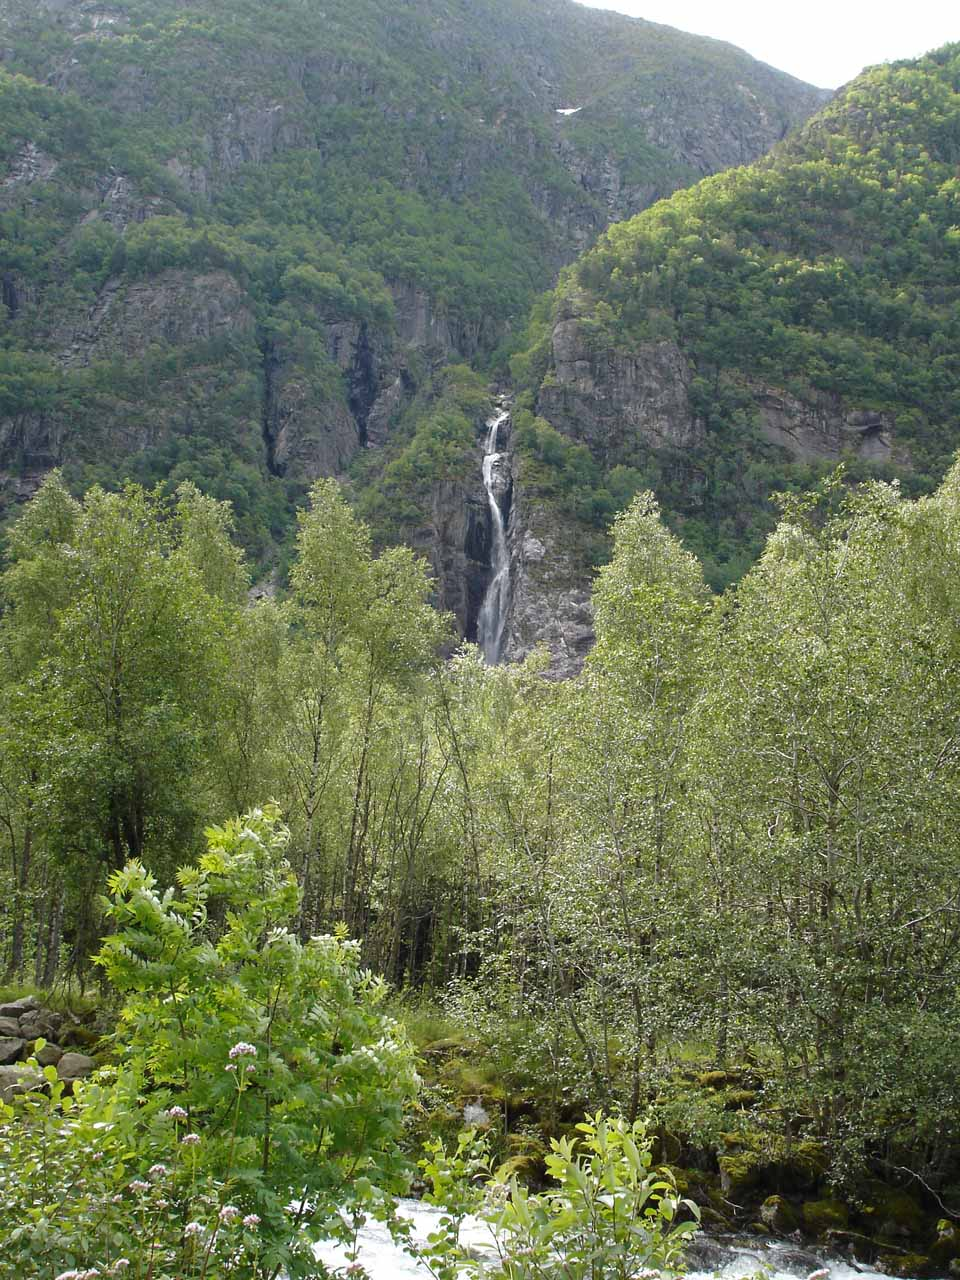 Looking across Simadalen Valley towards some obscure waterfall